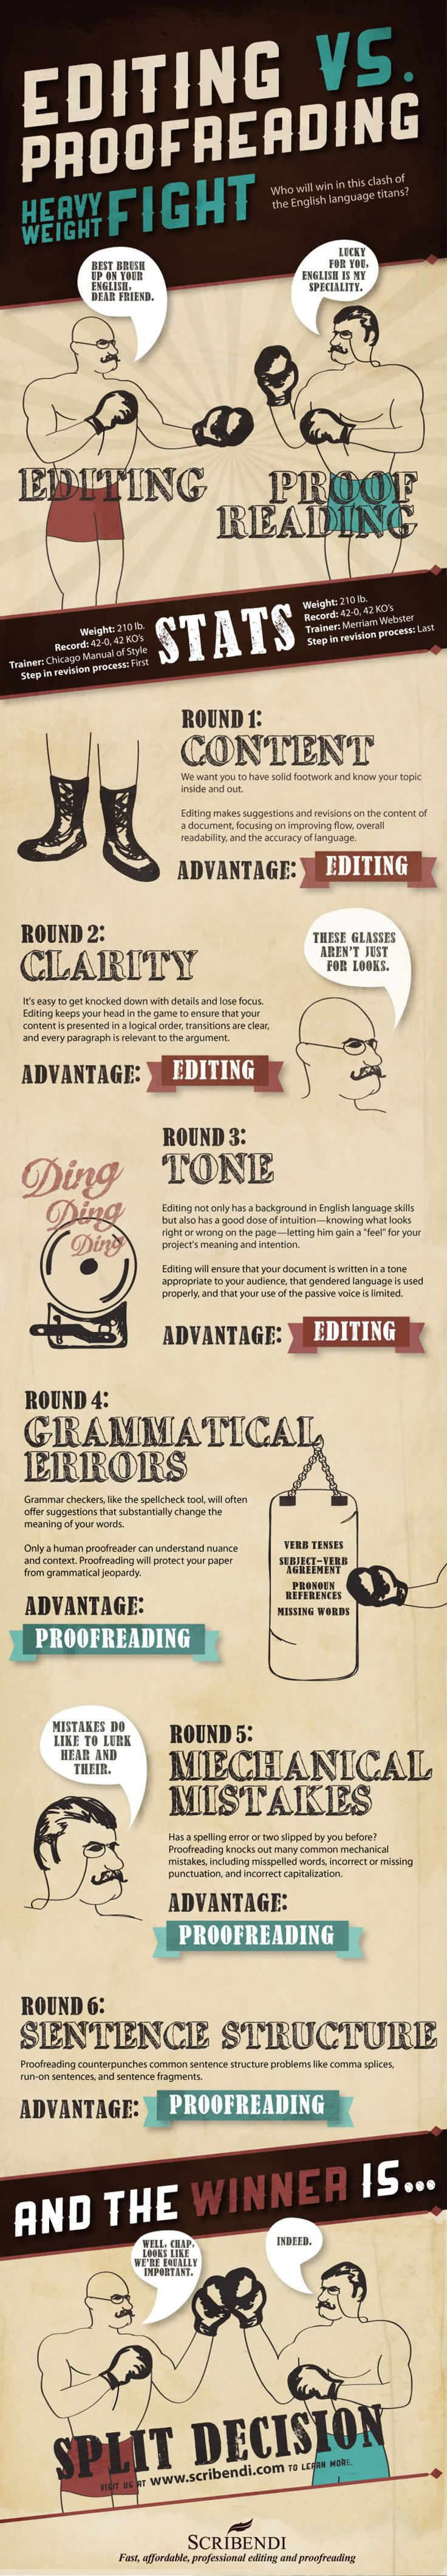 how to become a scopist proofreader